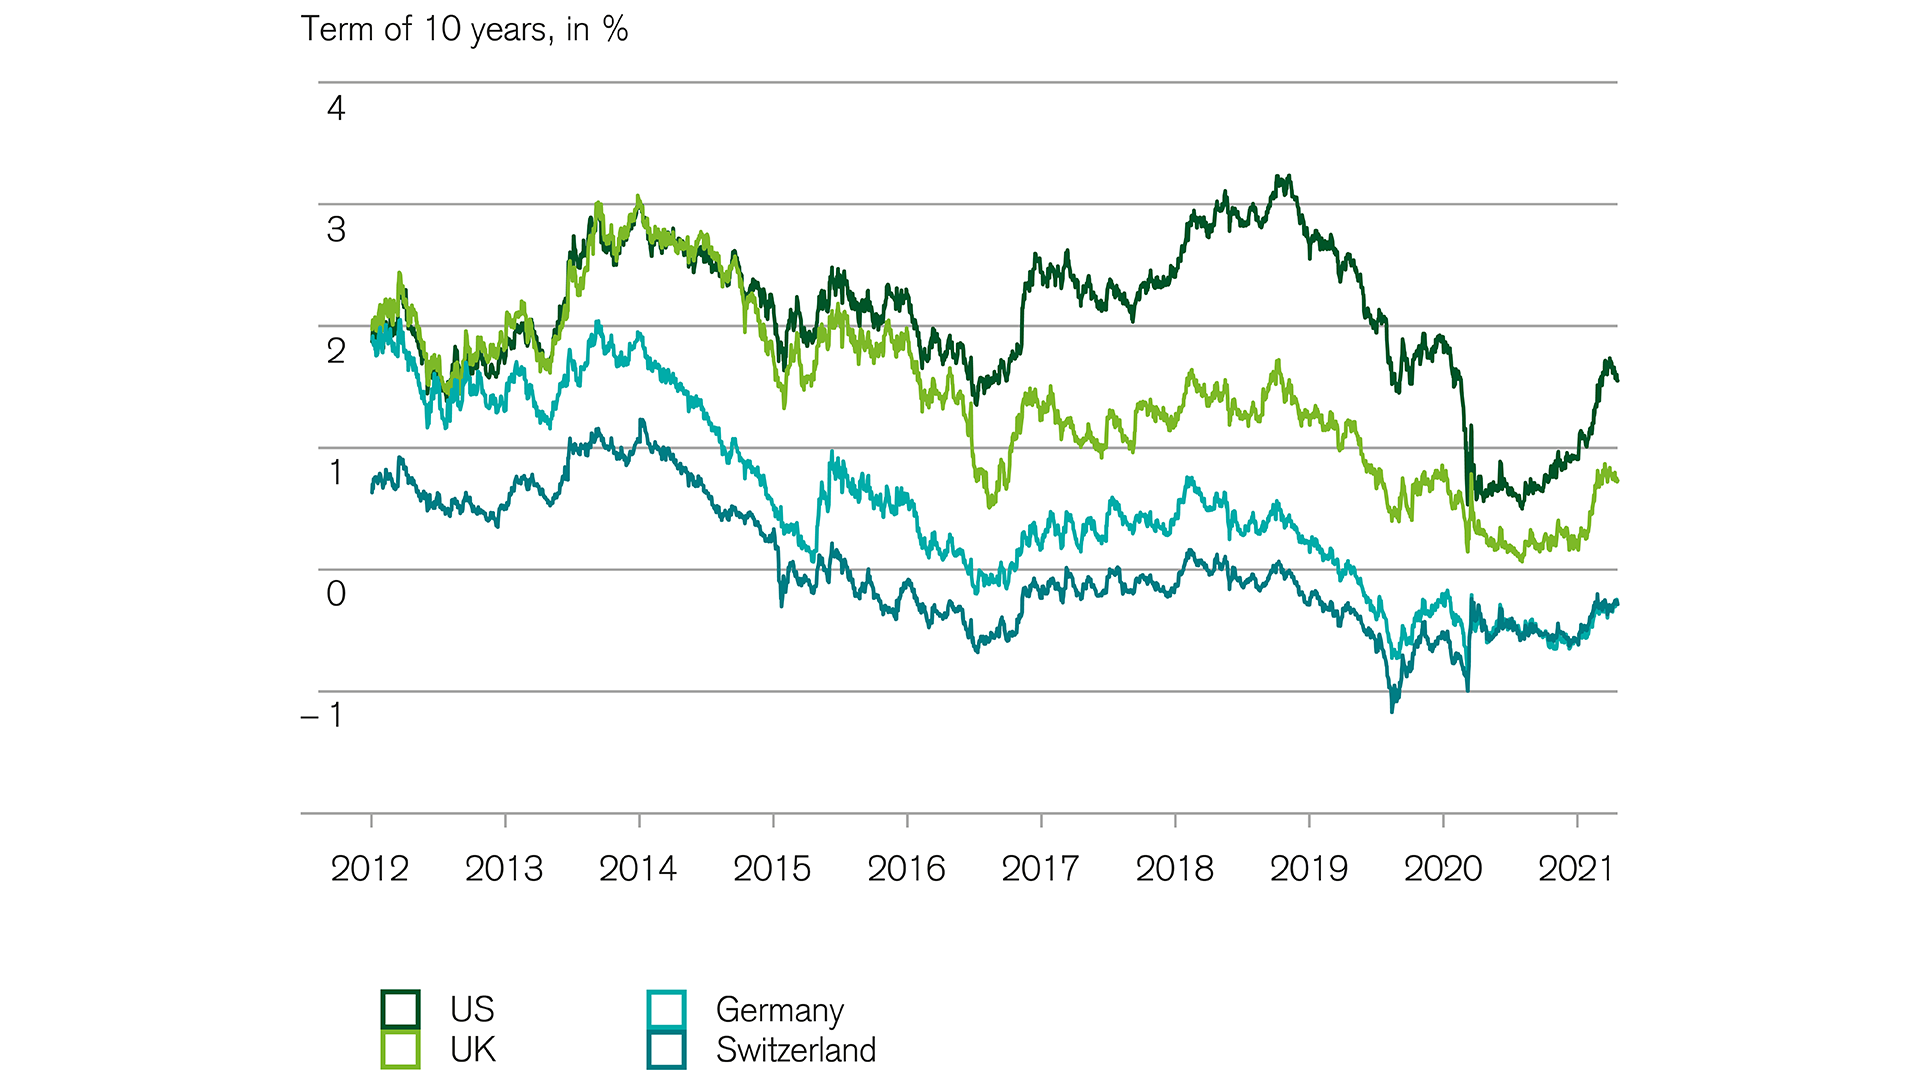 Financial markets: Rise in interest rates on government bonds in the US takes a break